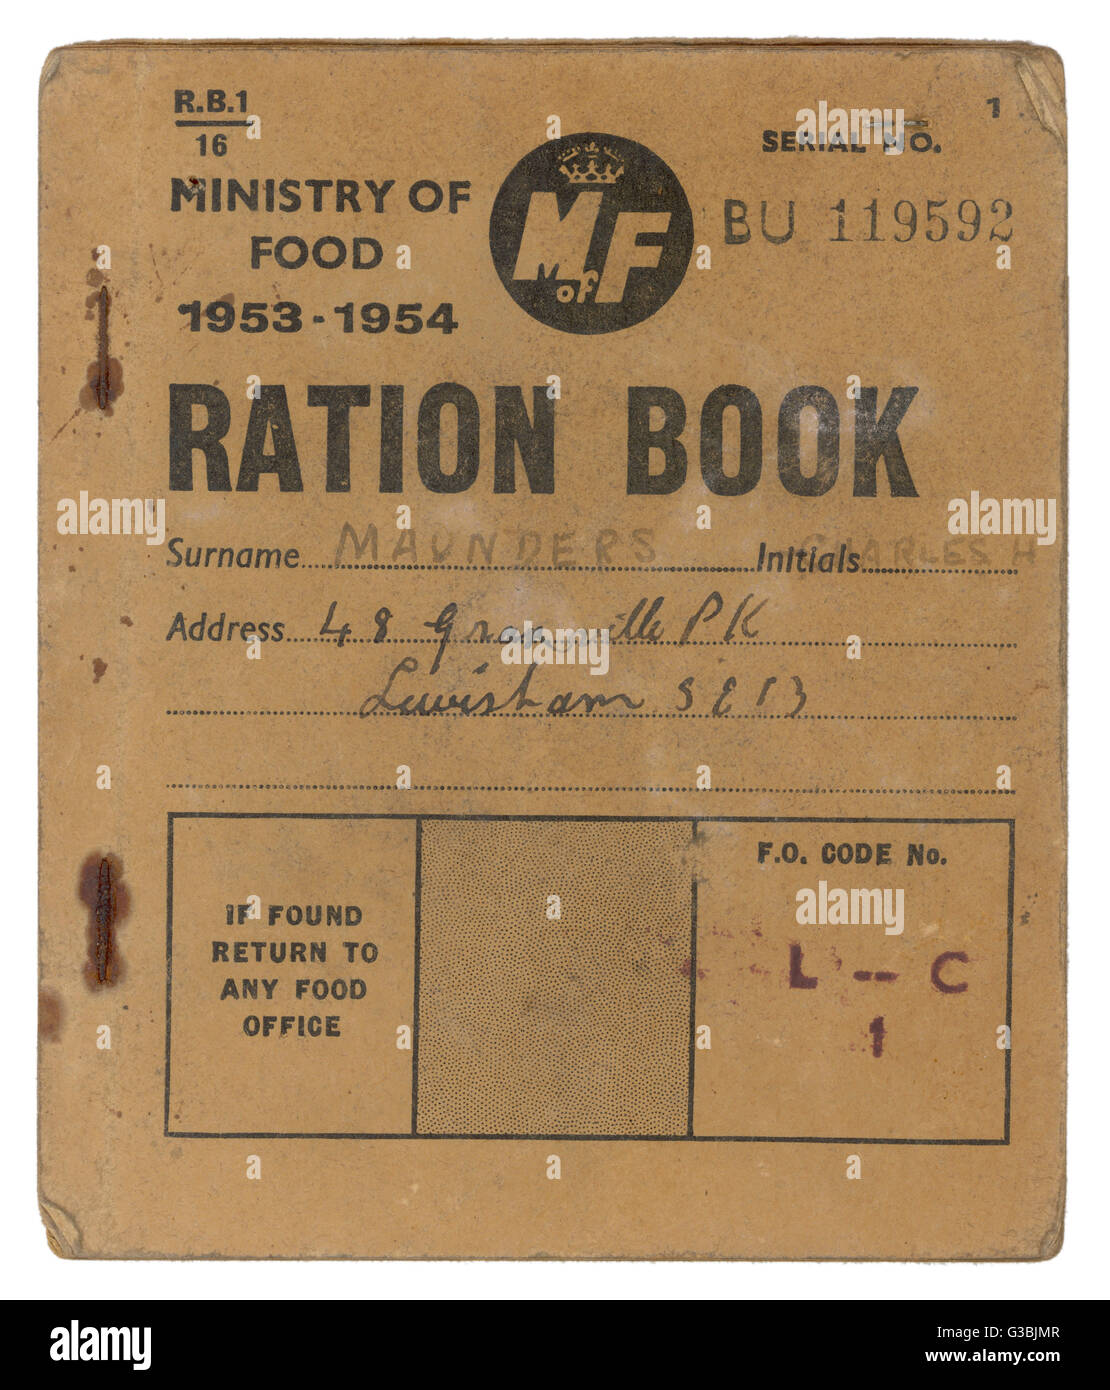 A Ministry of Food Ration  Book, proving that rationing  lasted in Britain for several  years after World War Two - Stock Image